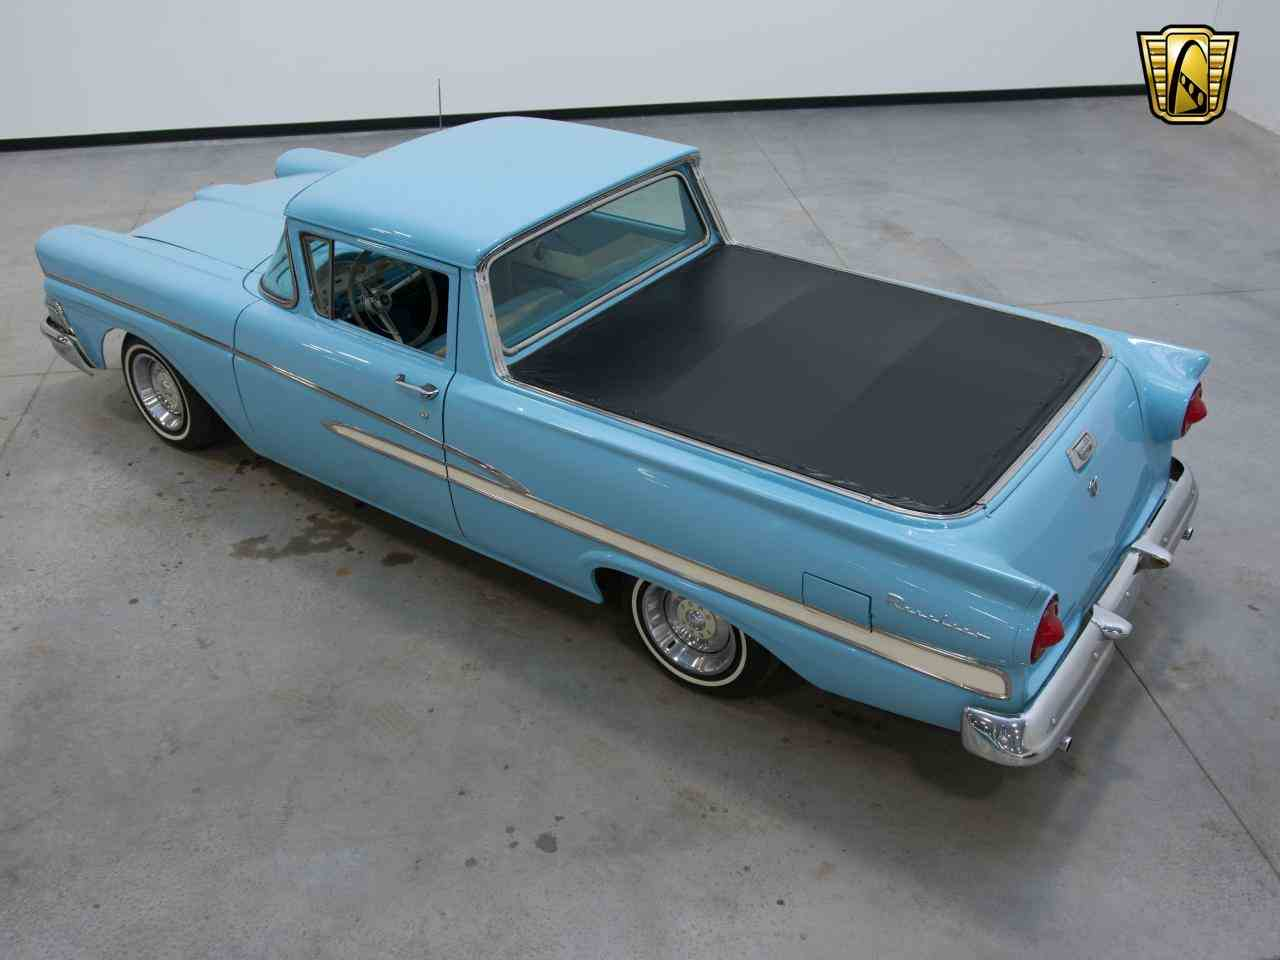 Large Picture of 1958 Ford Ranchero located in Kenosha Wisconsin - $20,995.00 - KH0V